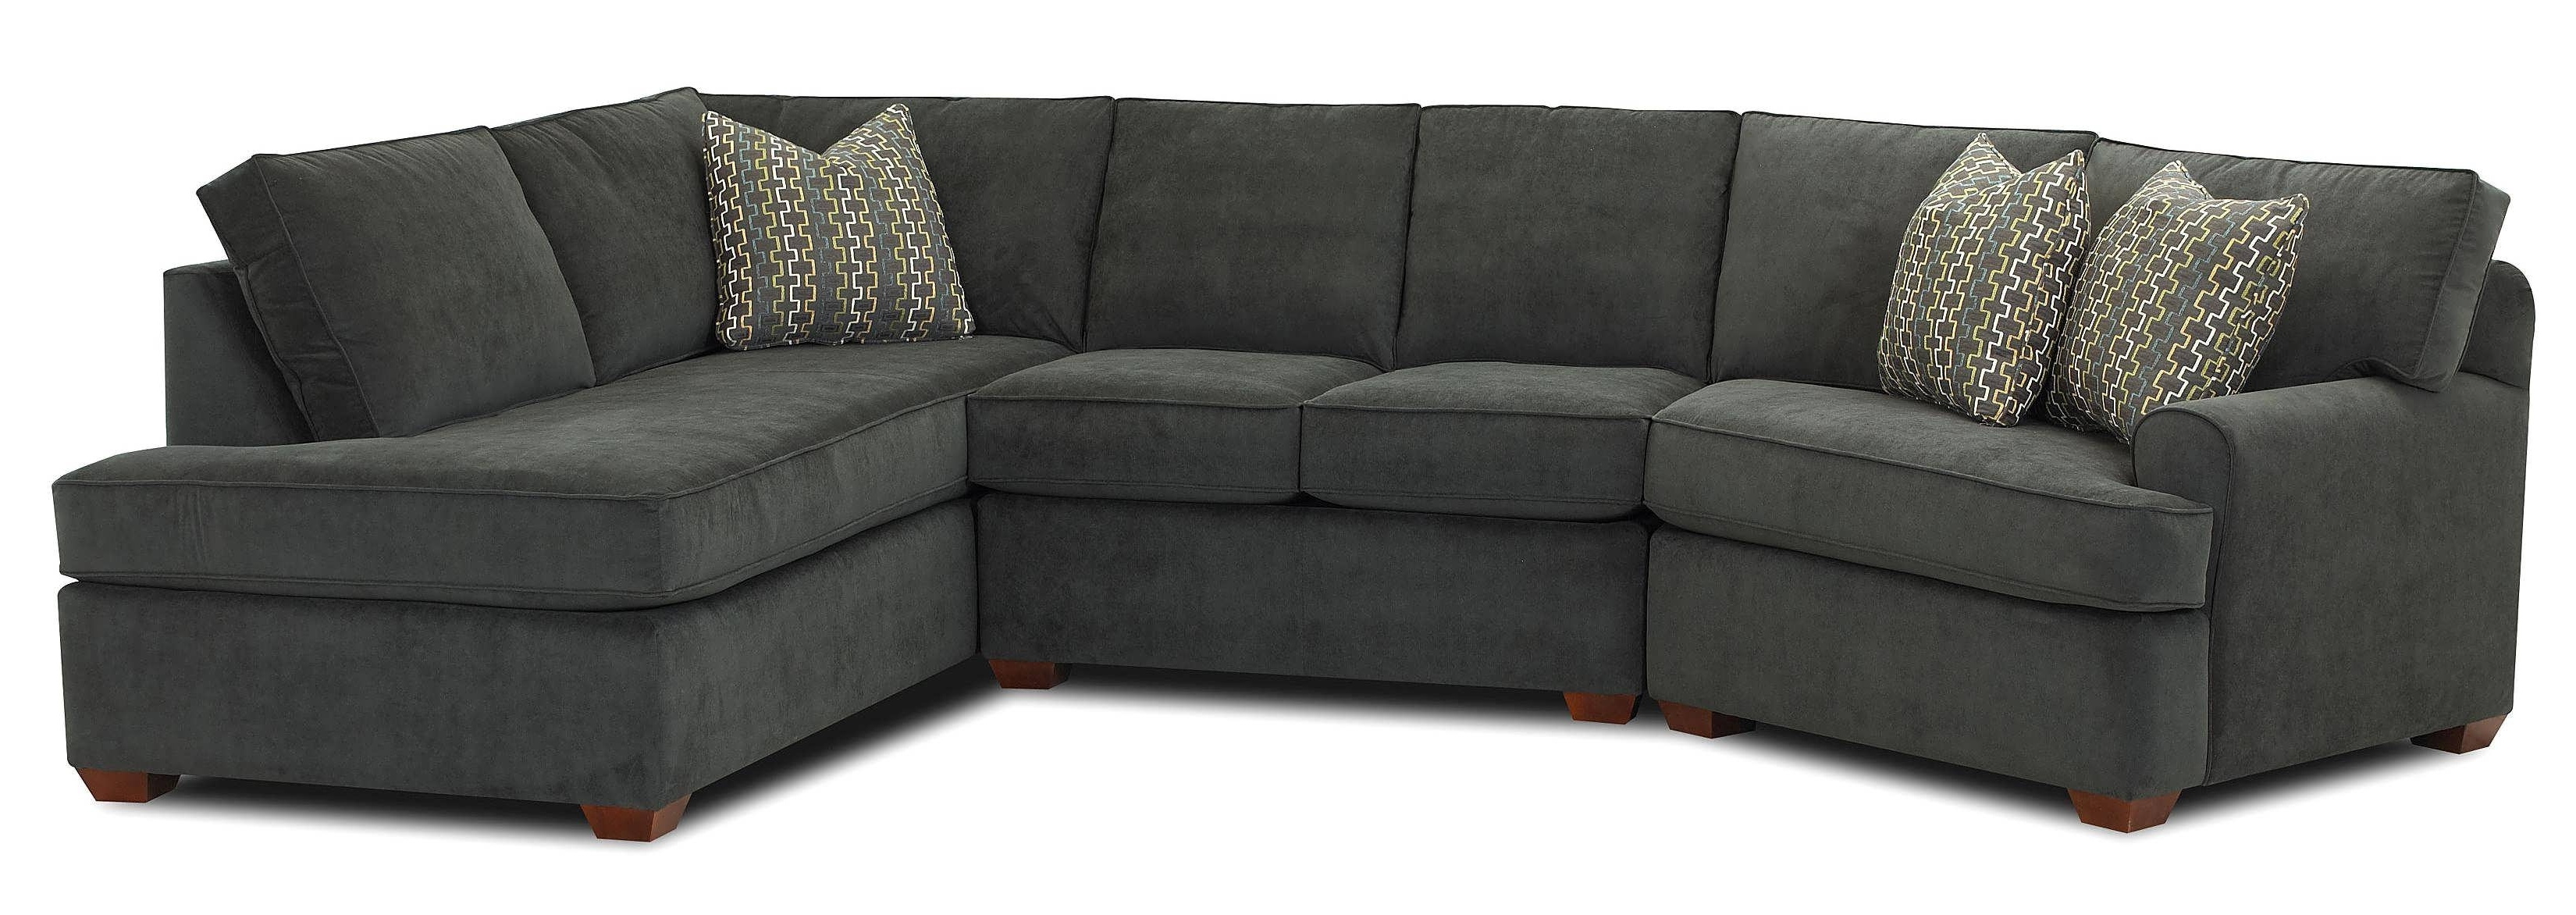 Best And Newest Sofa : L Sectional Couch Double Chaise Sectional L Shaped Couch With Regard To Gray Chaises (View 6 of 15)